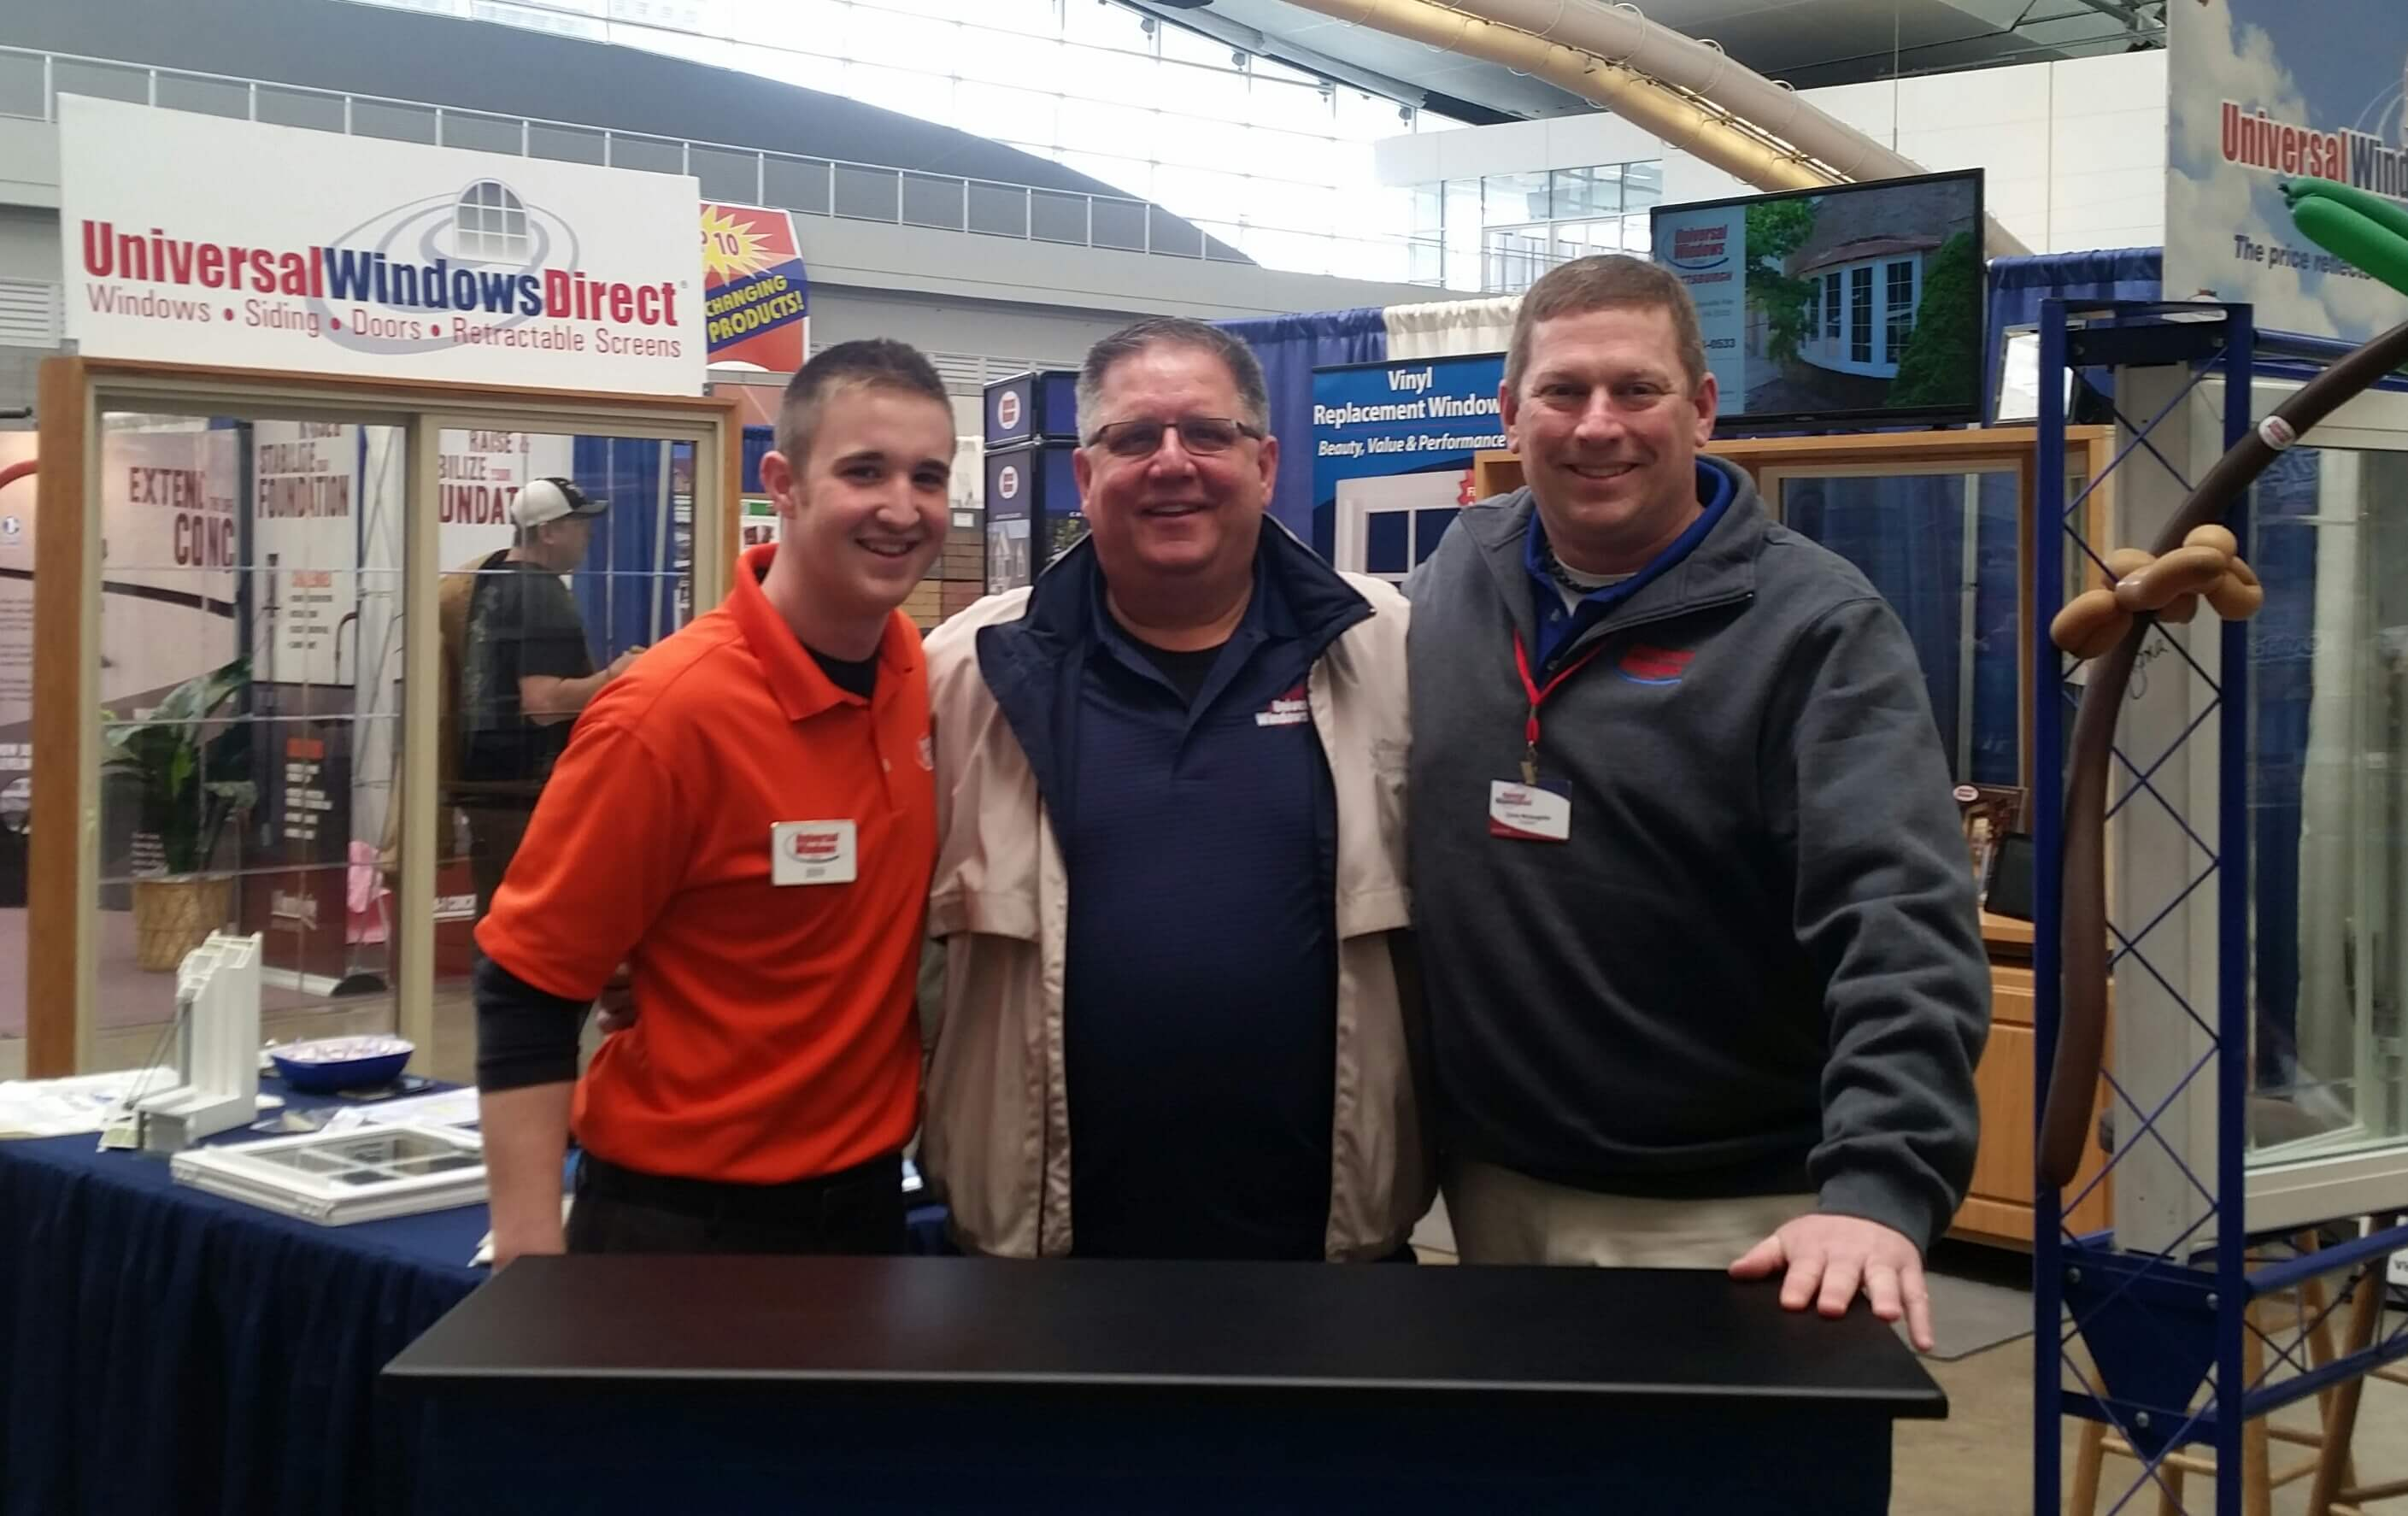 Universal Windows Direct Of Pittsburgh Prepares For The City 39 S Annual Home Garden Show